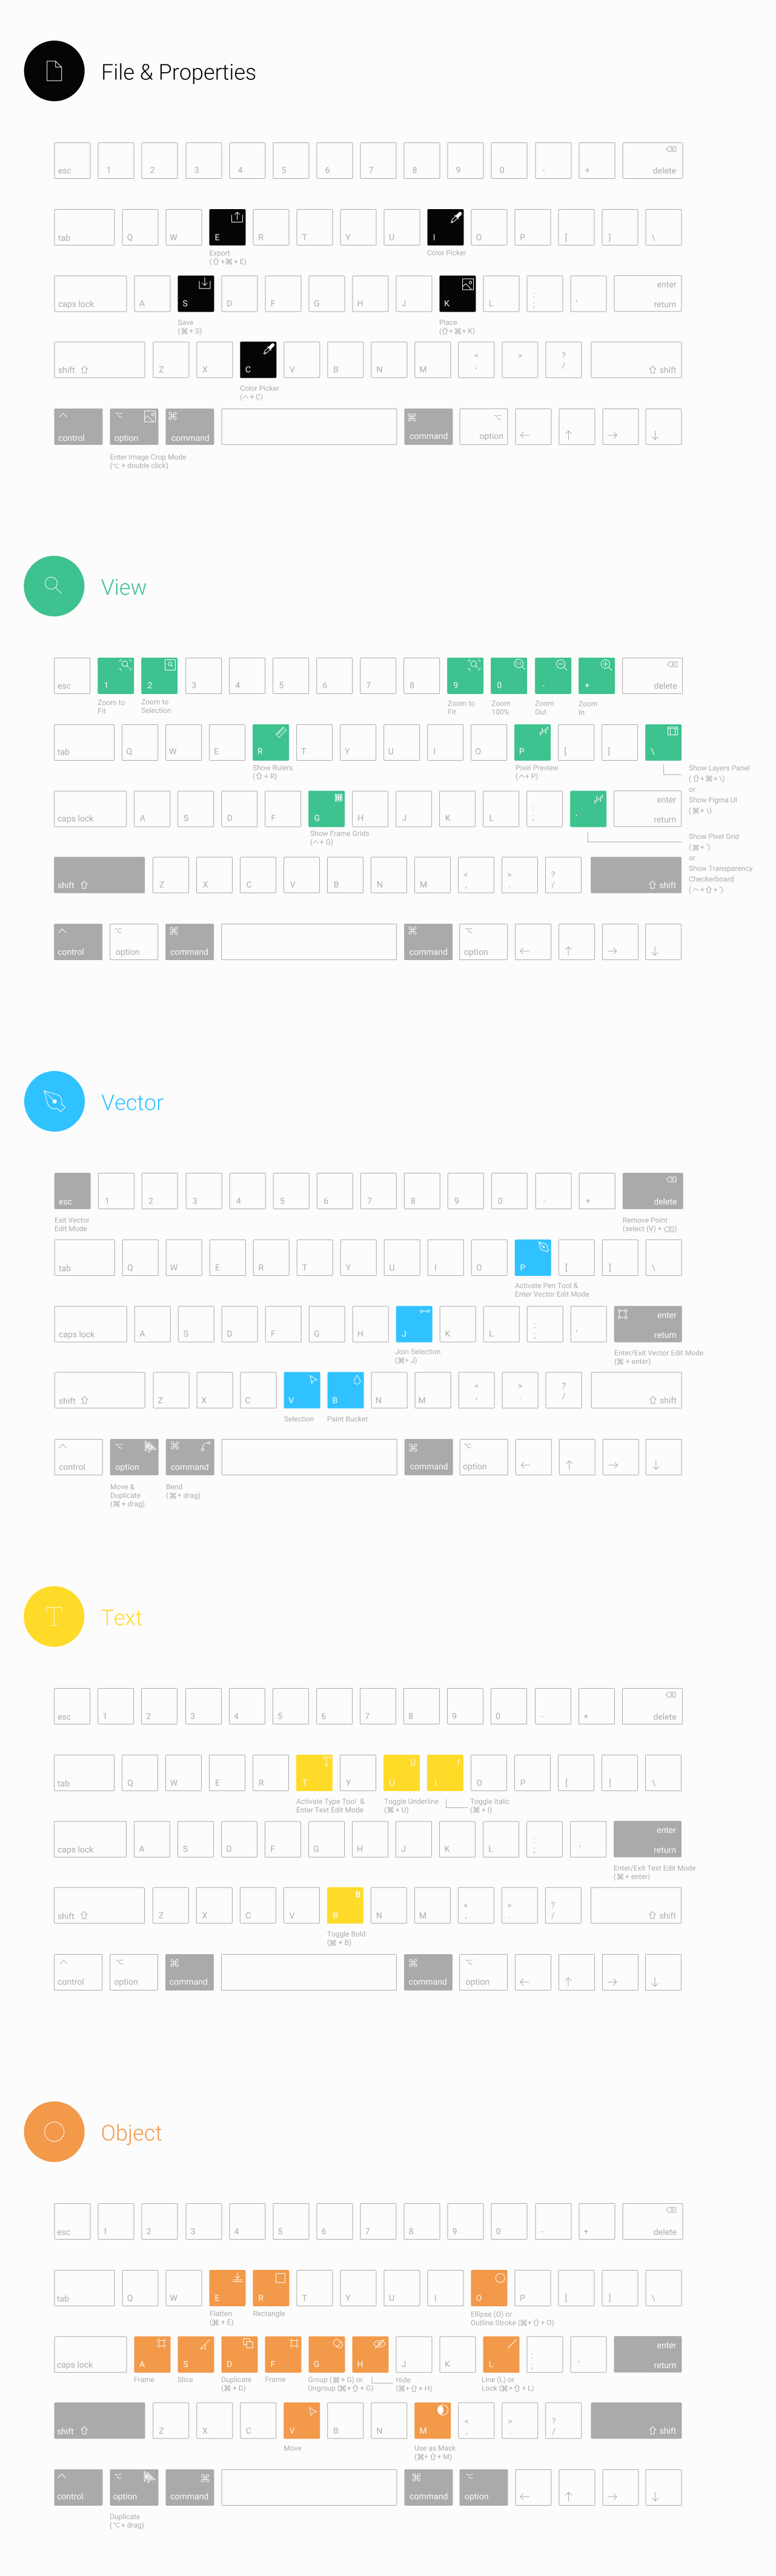 Figma Keyboard Shortcuts for UI Designers